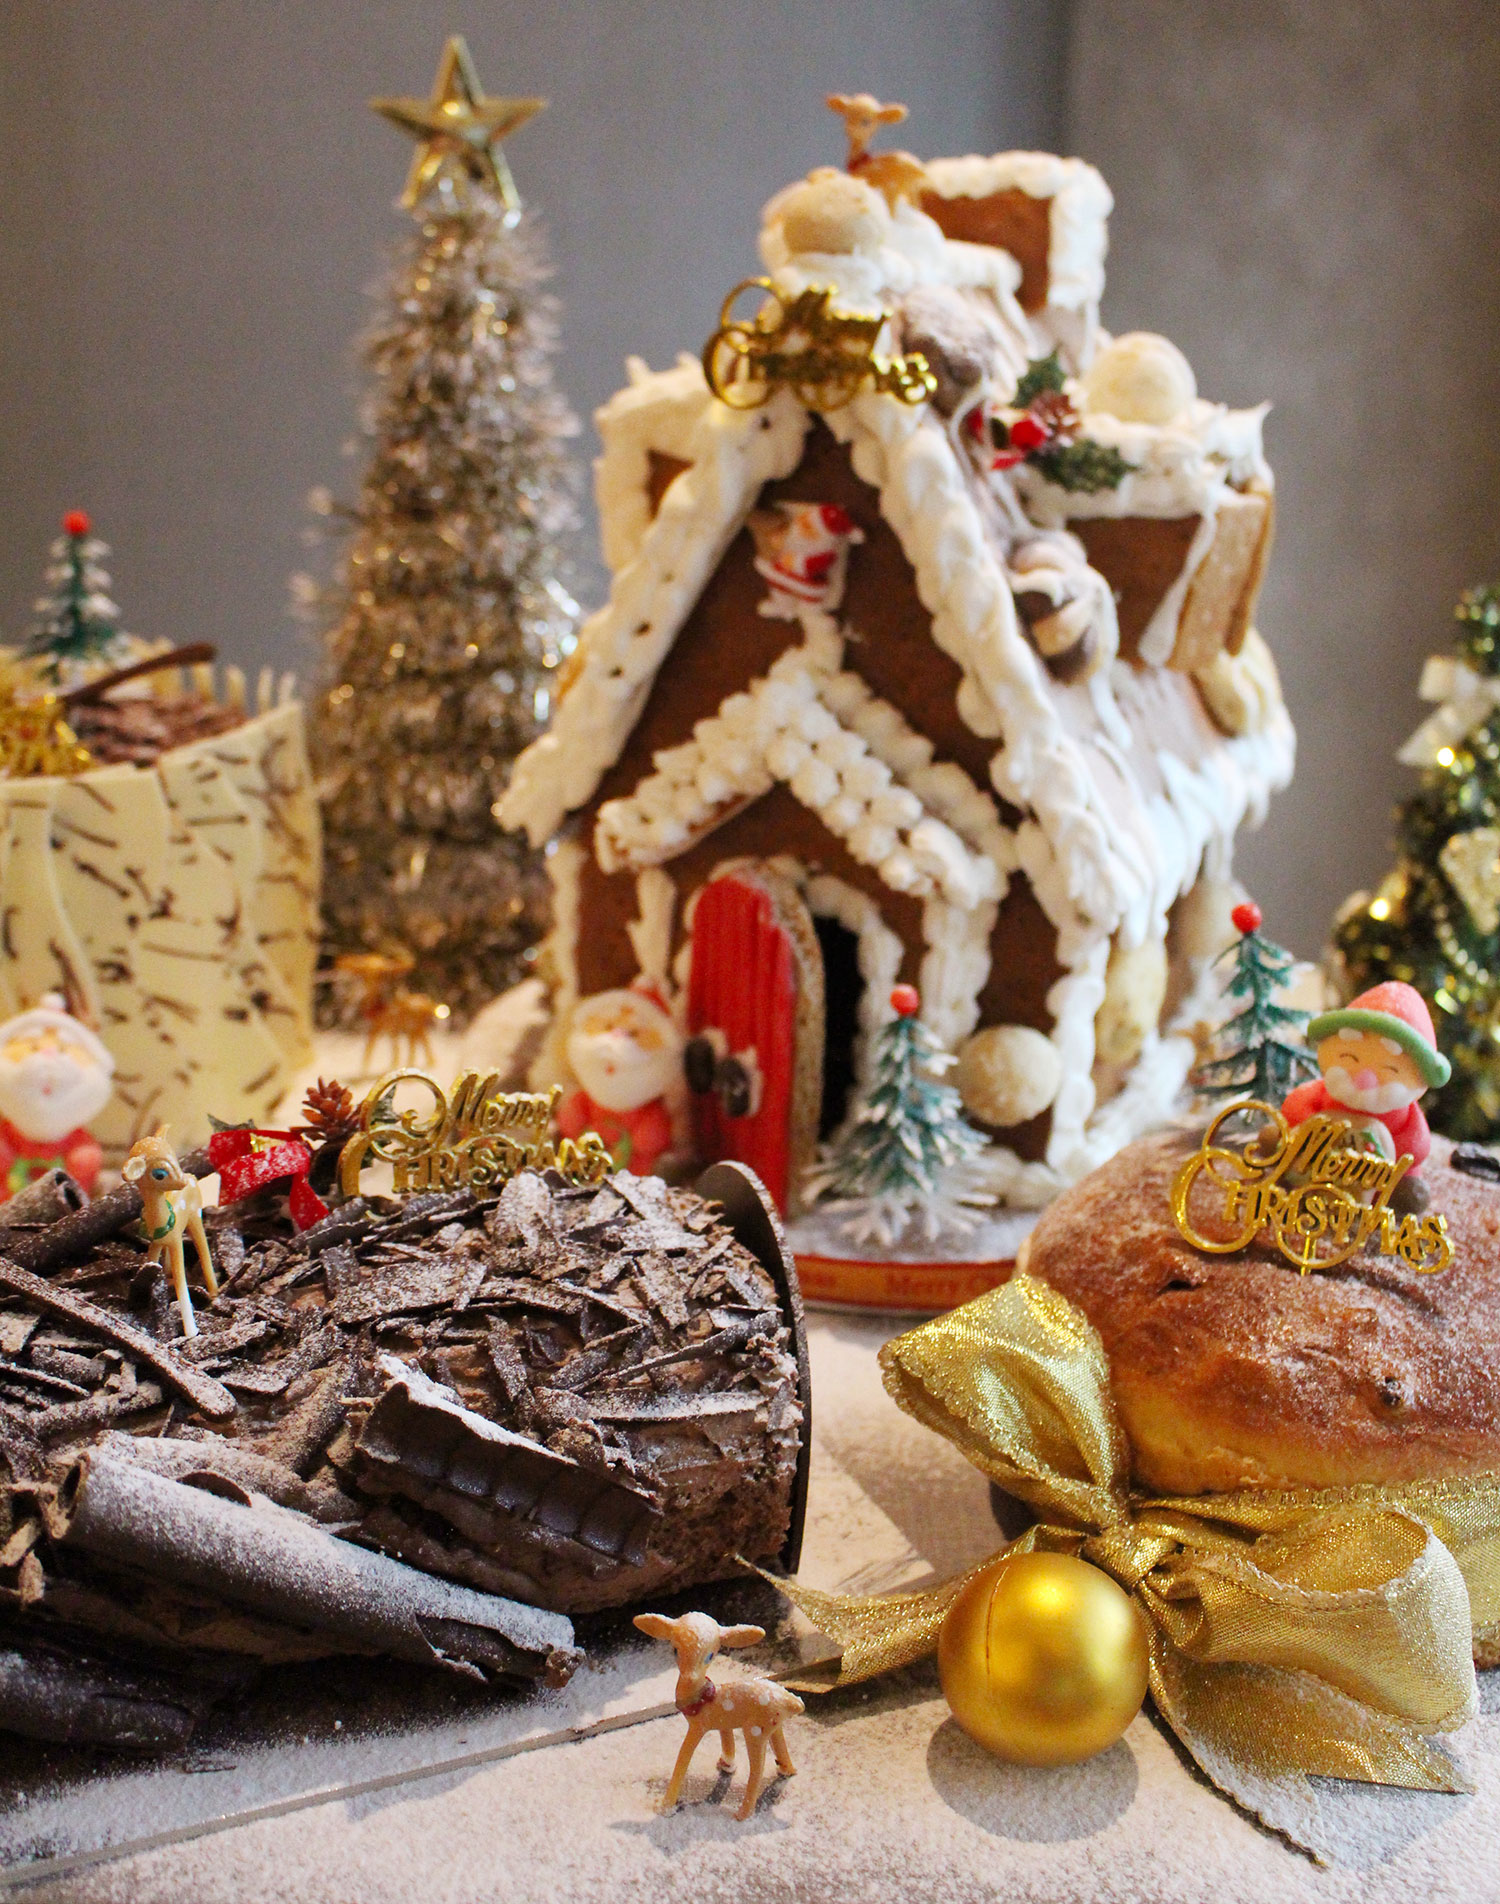 Xmas-Logcakes-and-Gingerbread-house